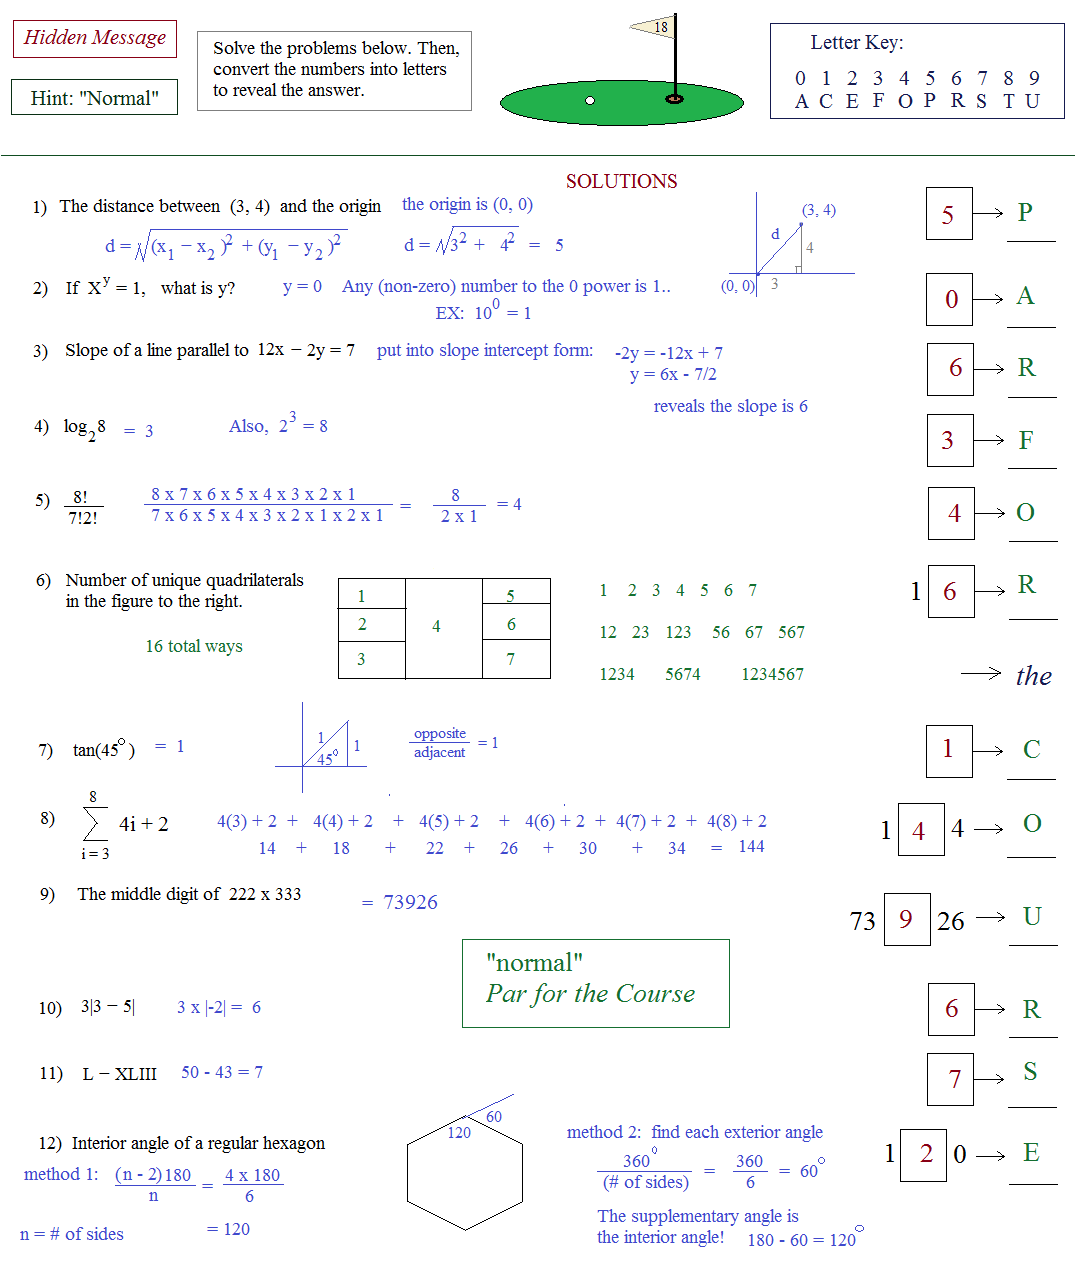 Worksheets Act Math Worksheets math plane act hidden message puzzle 2 golf solutions